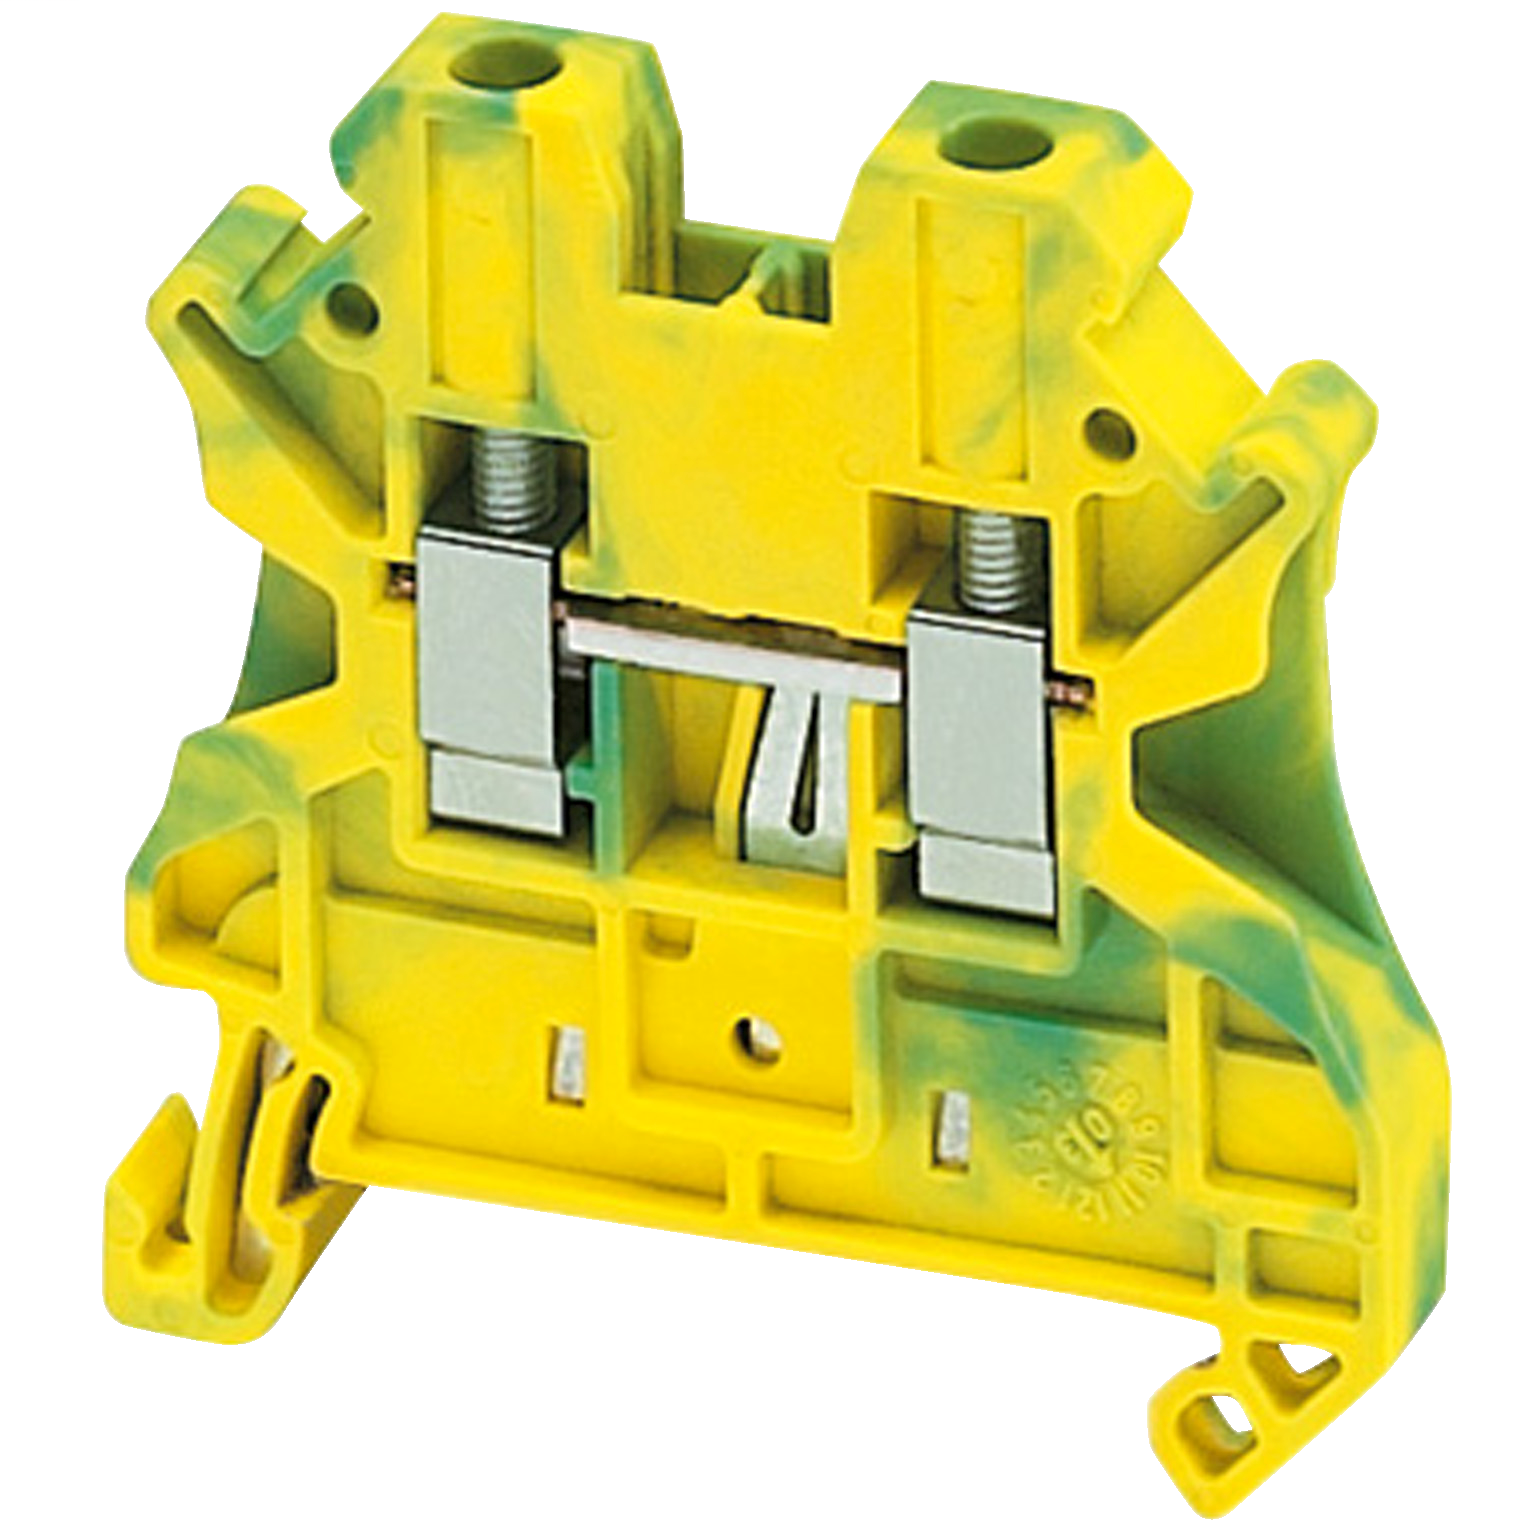 SQUARE D SCREW TERMINAL, PROTECTIVE EARTH, 2 POINTS, 4MM², GREEN-YELLOW